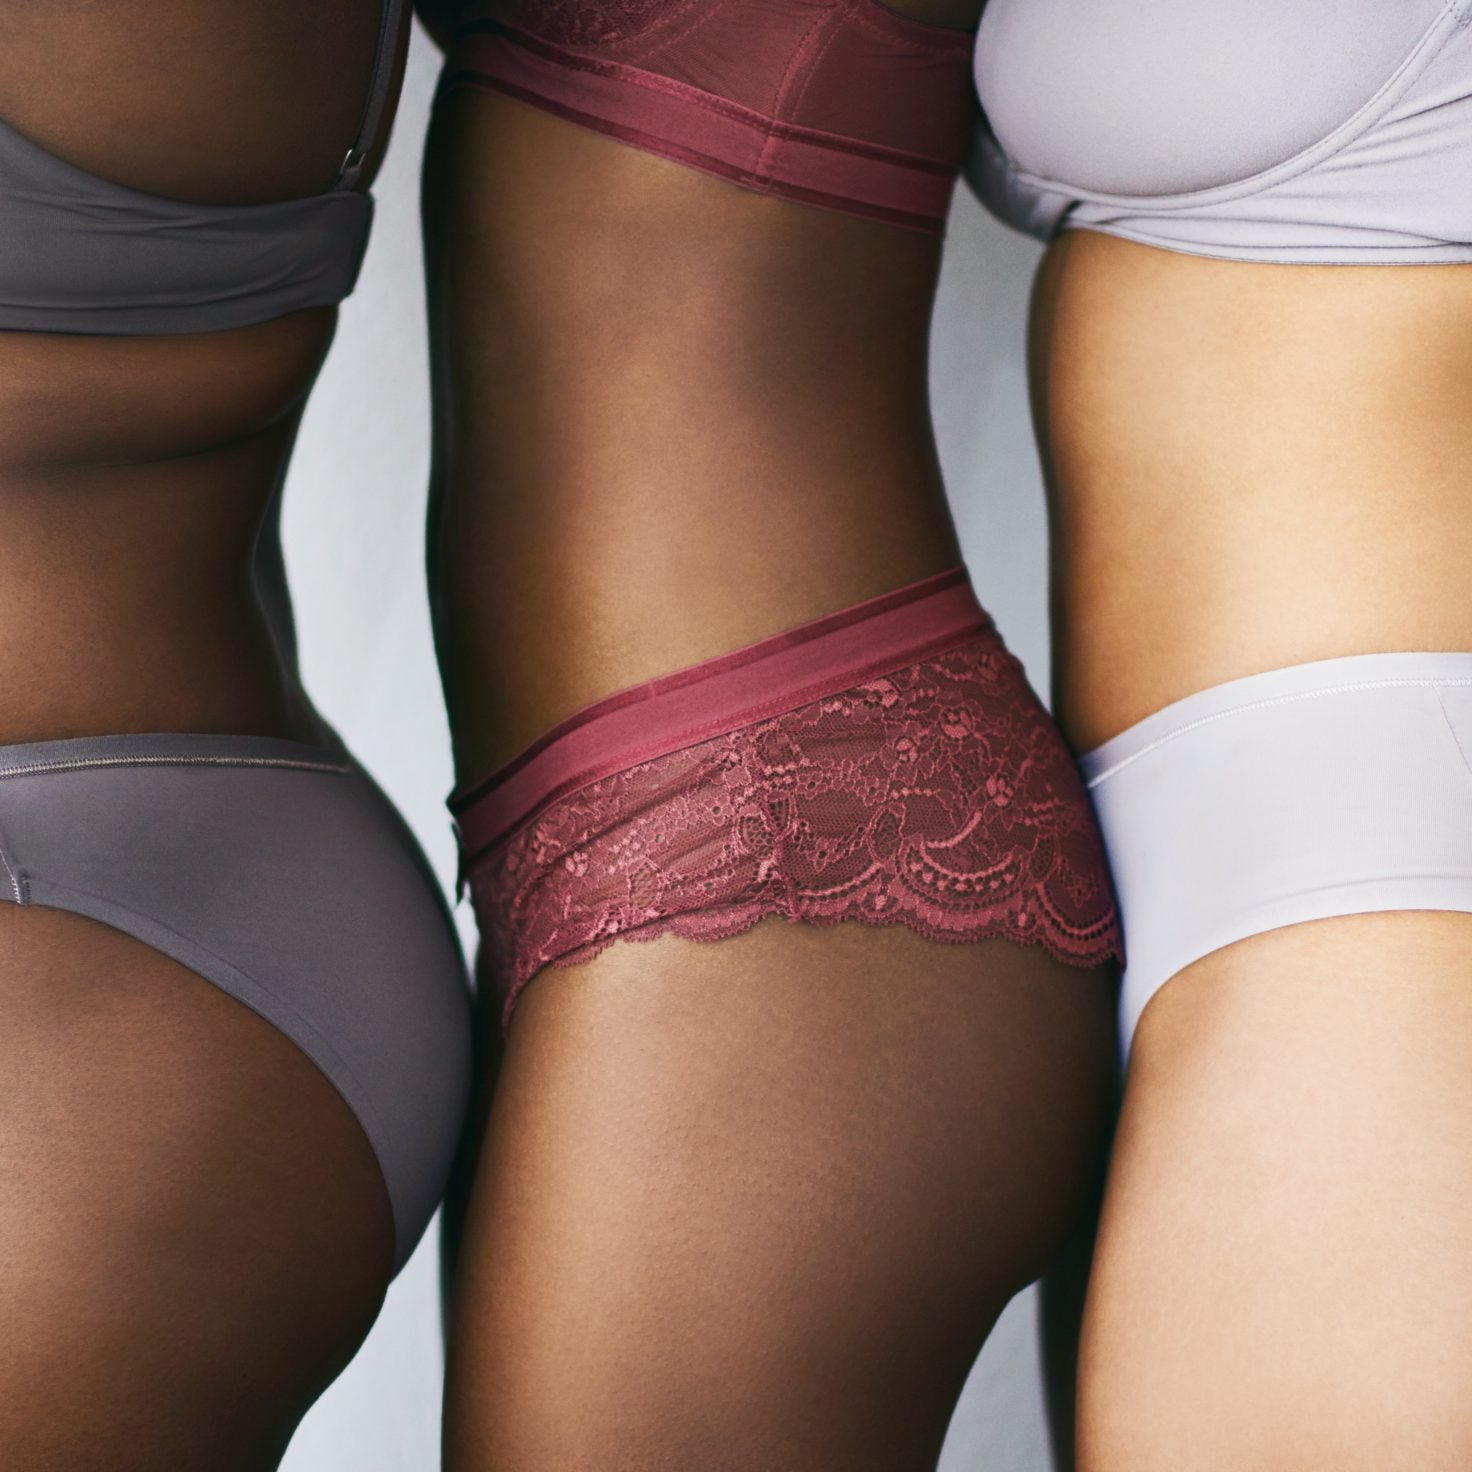 Ask An OB-GYN: How Long Should I Keep My Panties Before They're No Good?